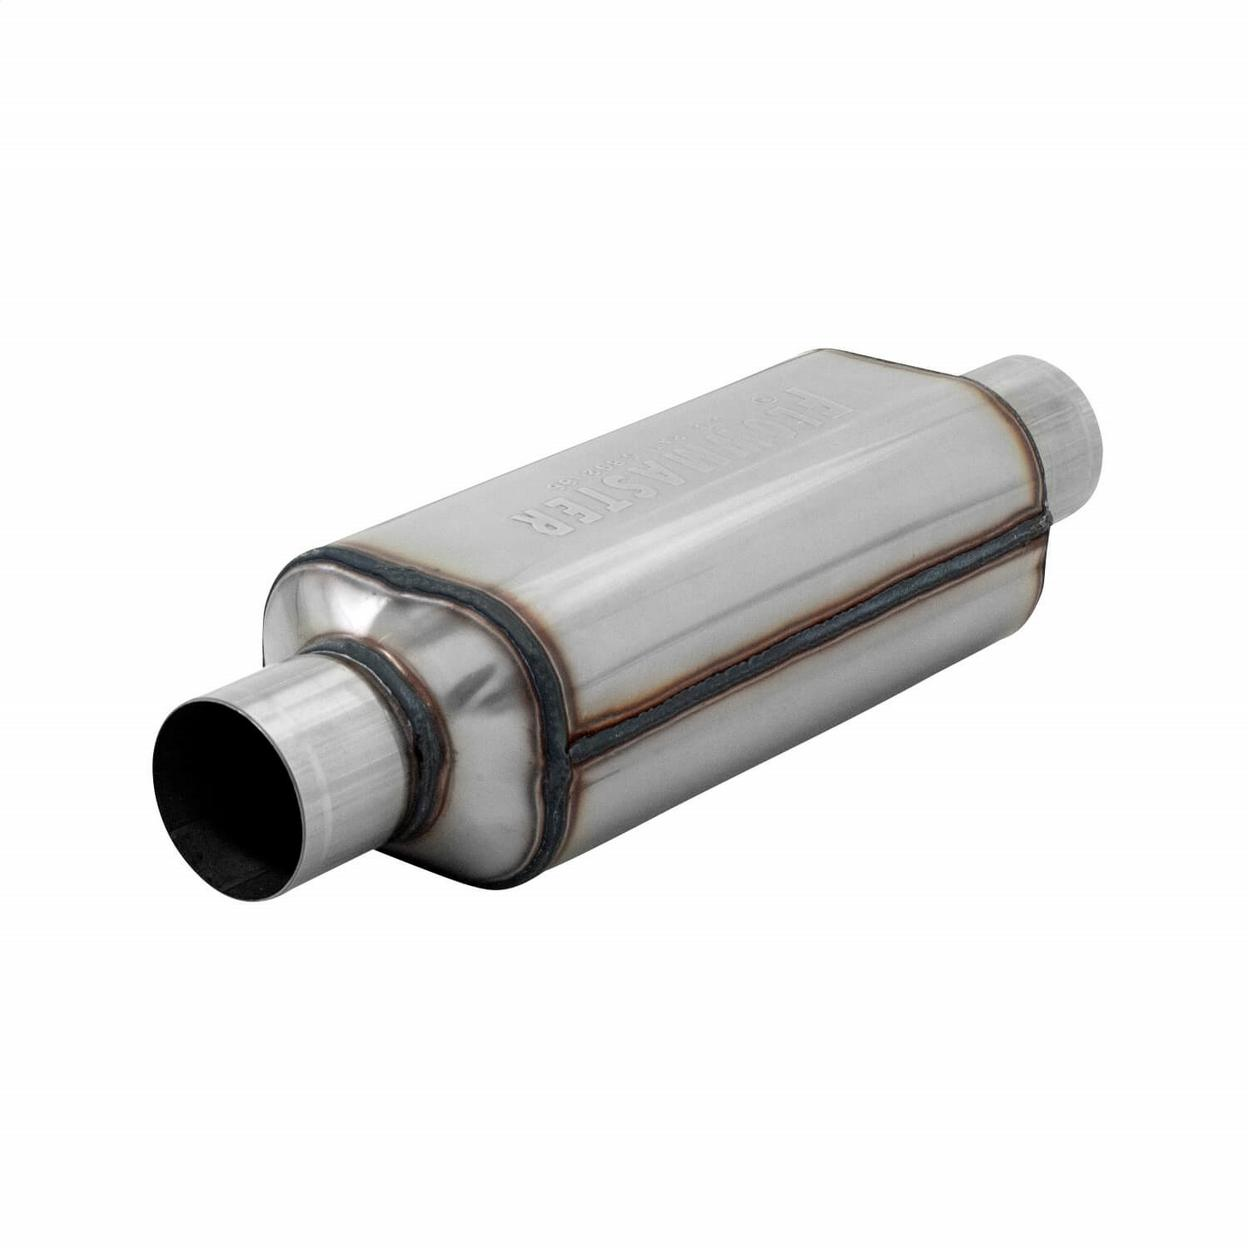 Super HP-2 Muffler 304S - 2.50 Center In. 2.50 Center Out - Aggressive Sound